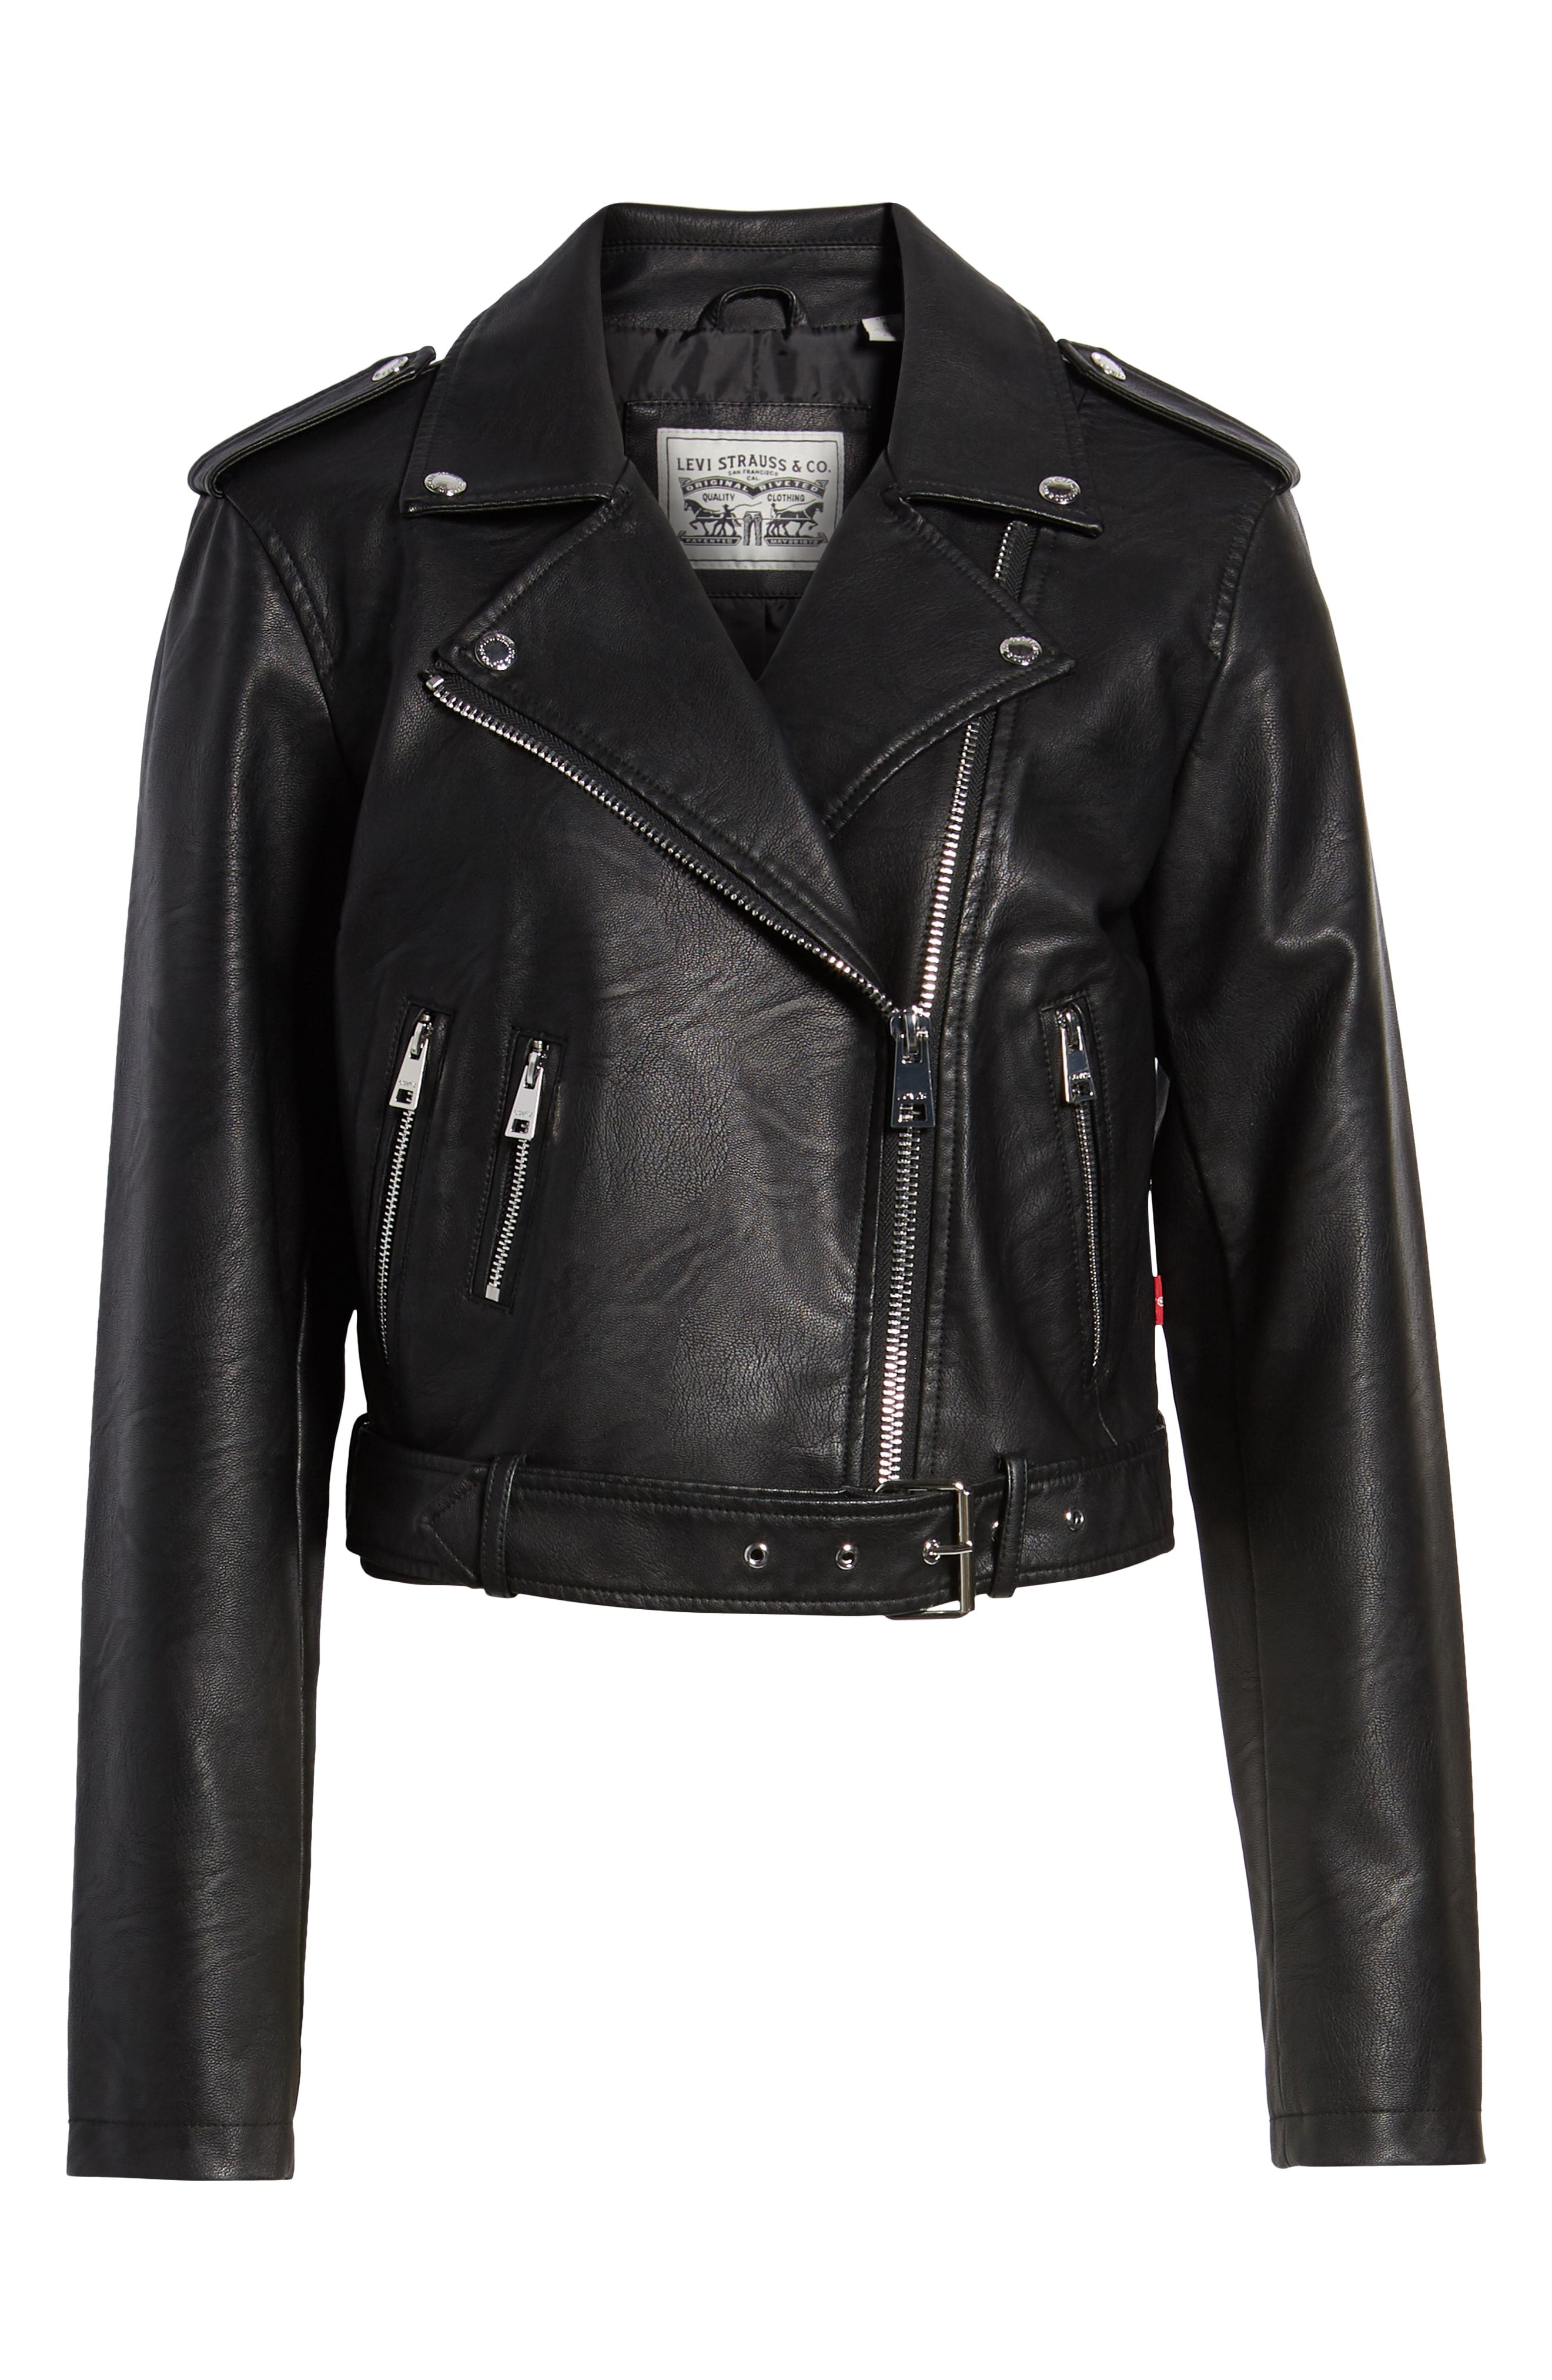 a3467983ba1b 25 Leather Jackets Outfits for Women 2018 - How to Wear A Leather Jacket